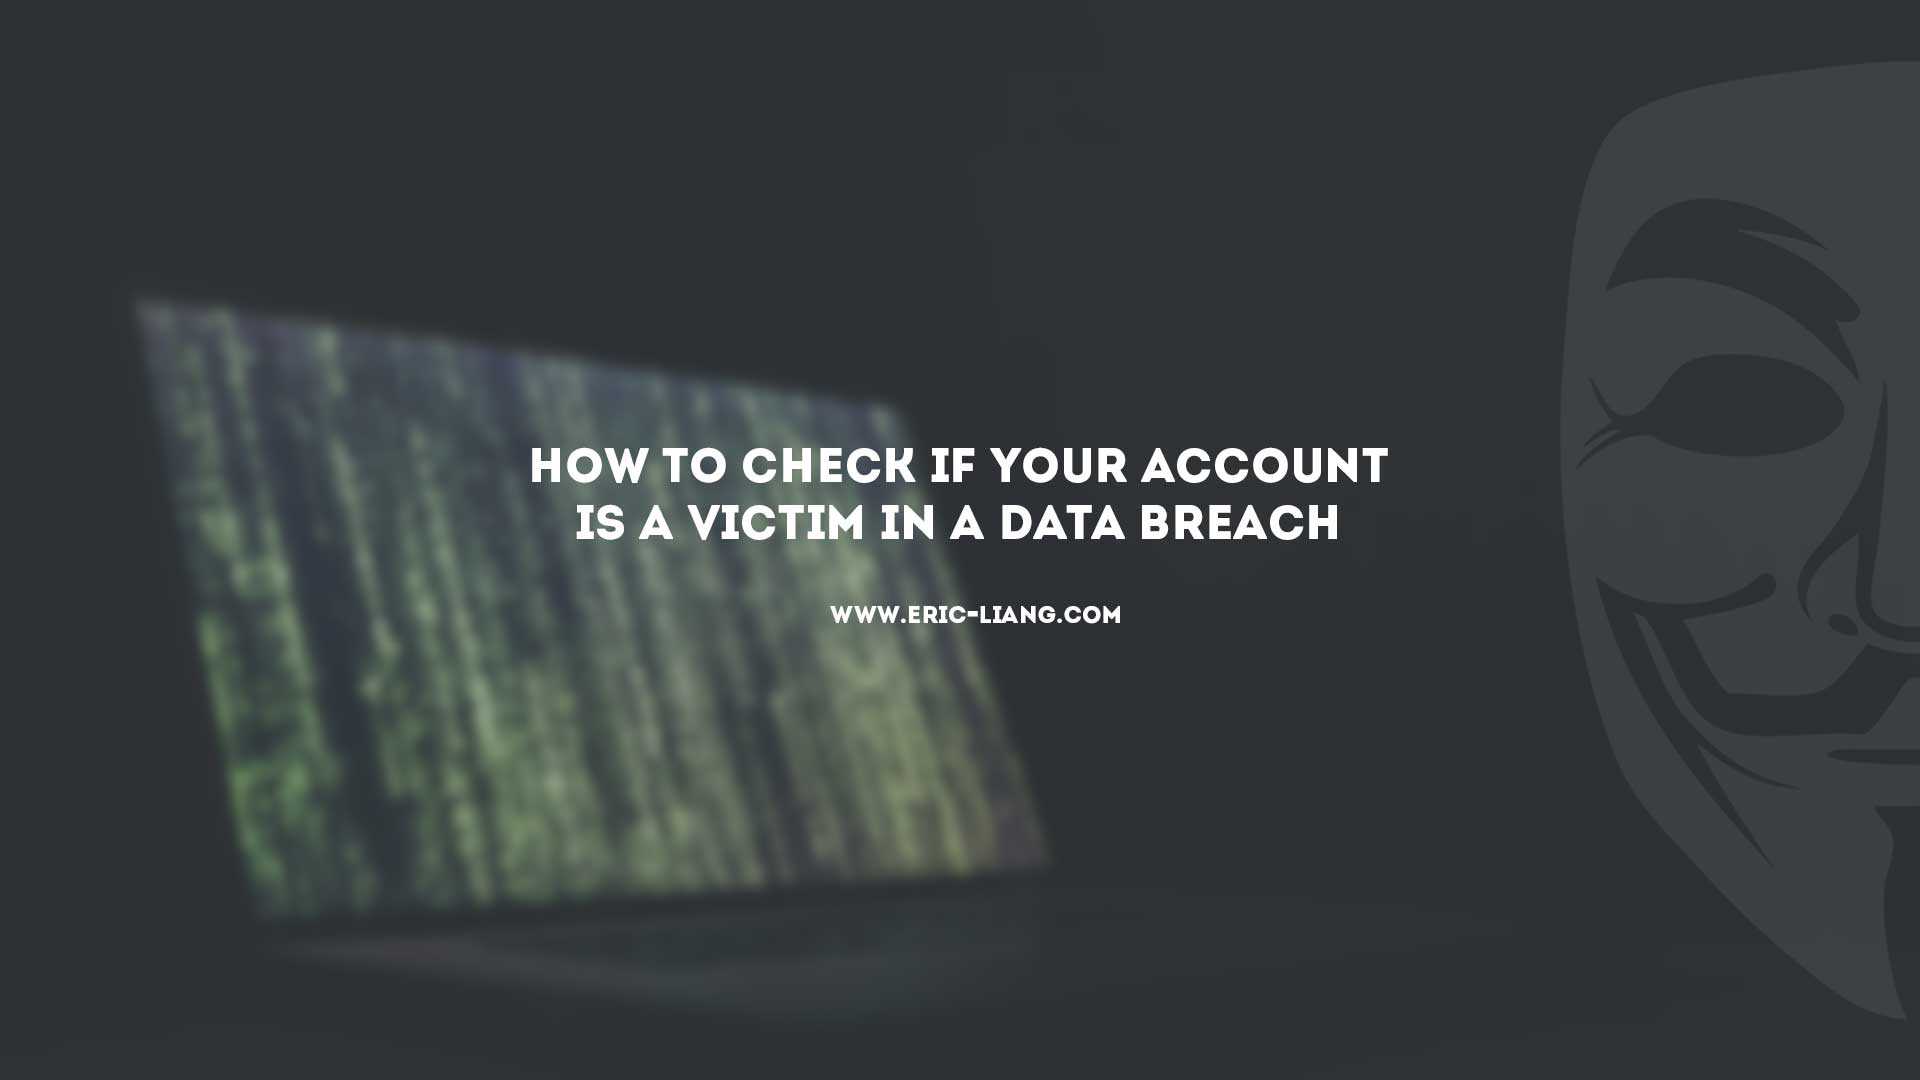 How To Check If Your Account Is A Victim In A Data Breach